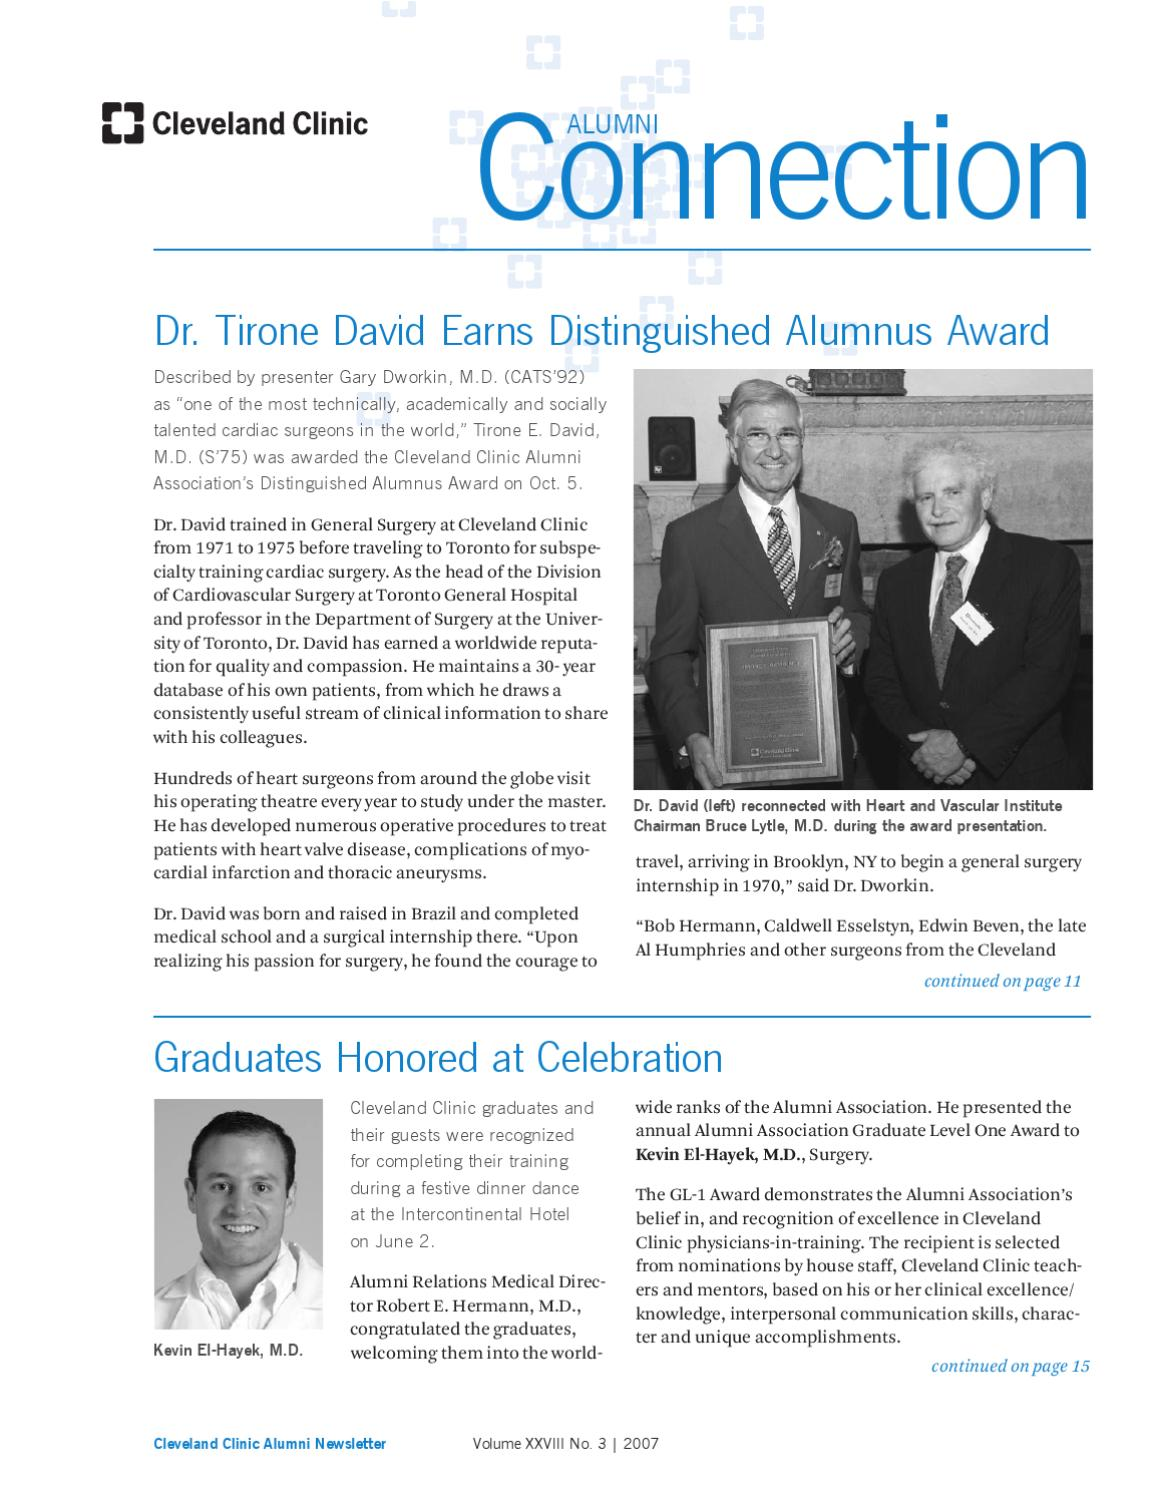 pvm report 2013 annual report by purdue university issuu cleveland clinic alumni connection vol xxviii no 3 2007